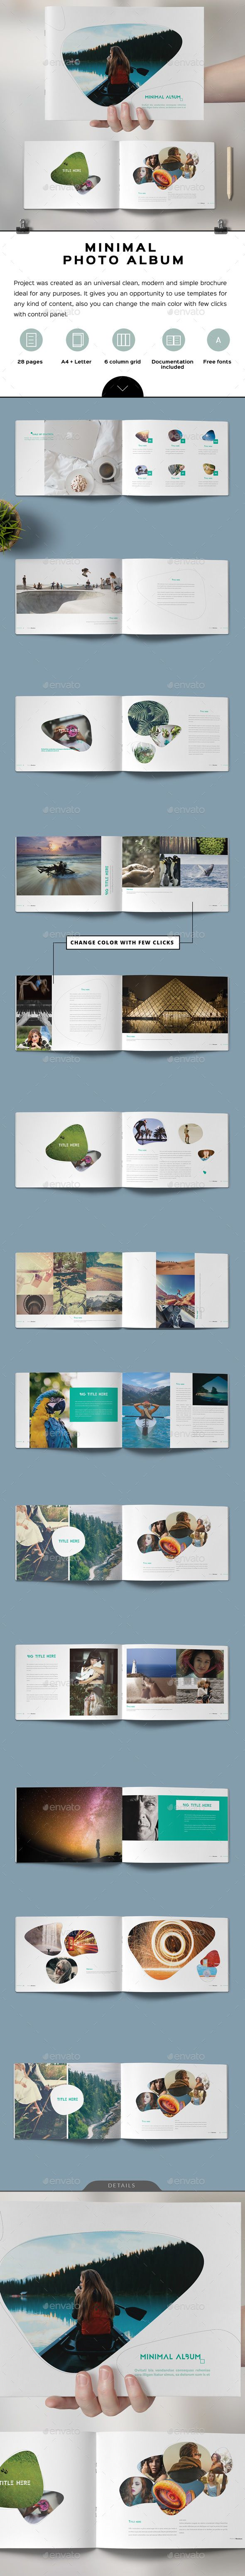 Minimal Photo Album - Photo Albums Print Templates